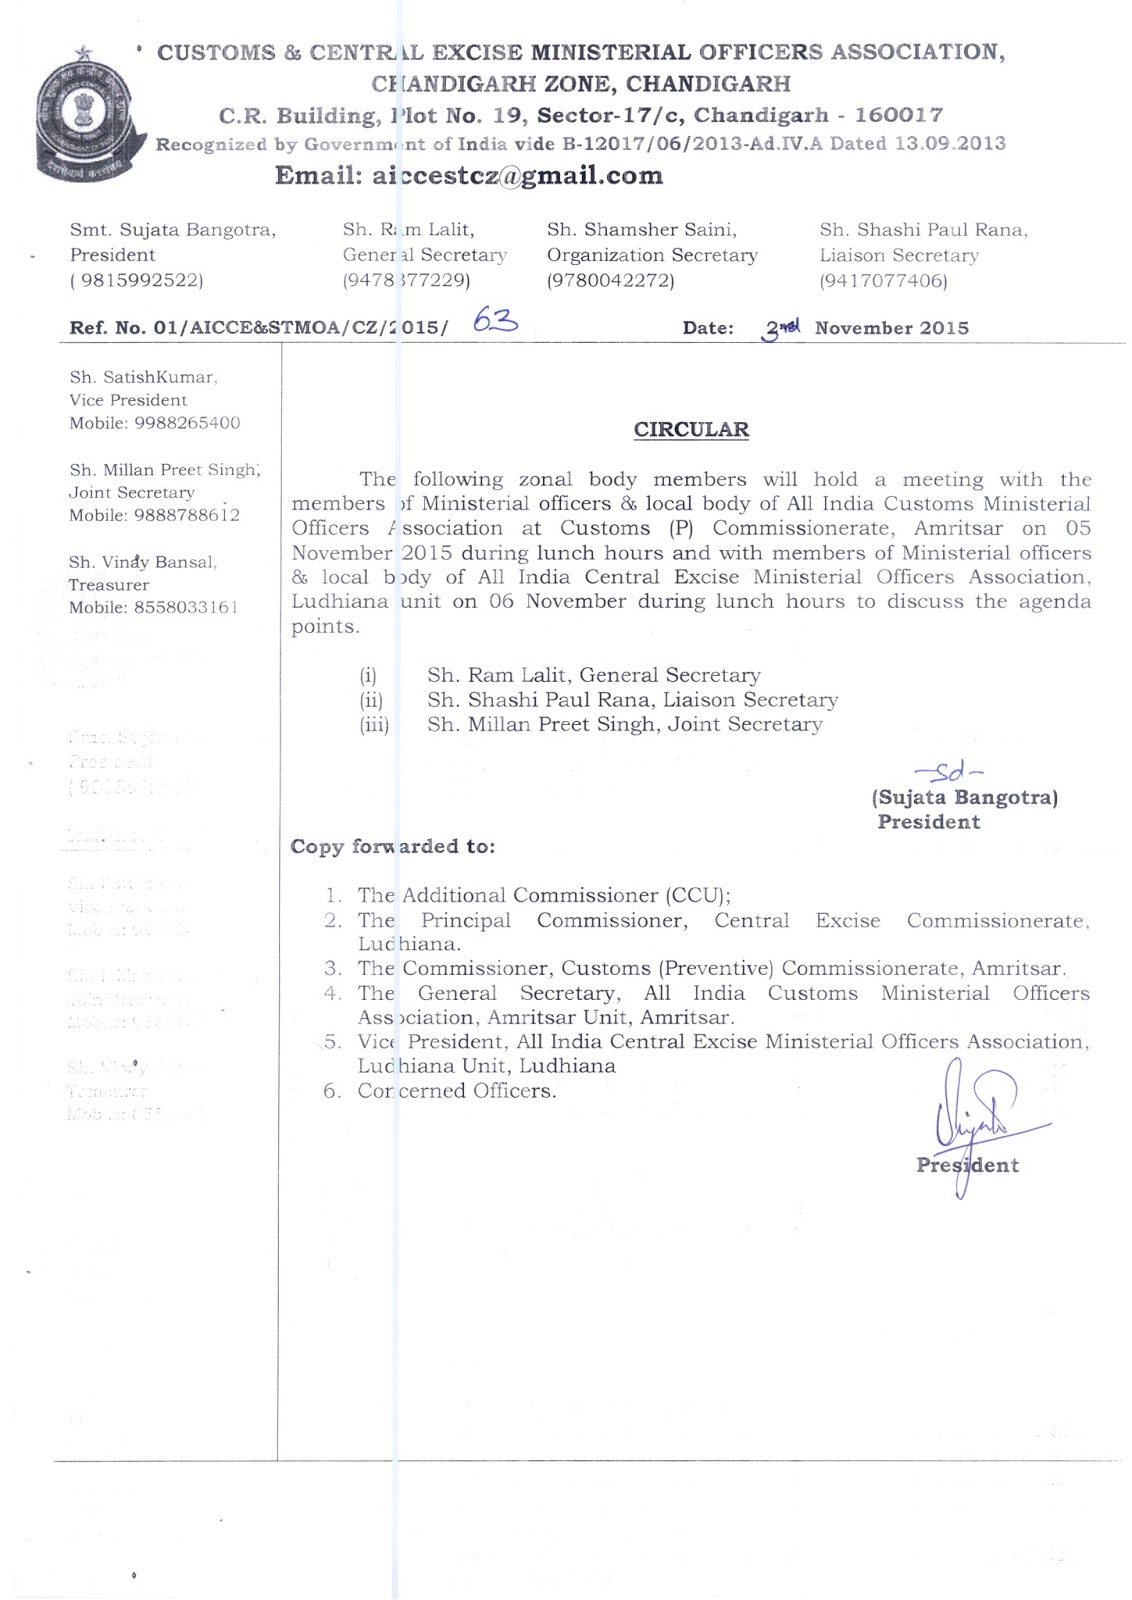 all central excise service tax ministerial officers rana sh millan preet singh will hold a meeting members posted at customs p commissionerate amritsar on 05 11 2015 and members posted at